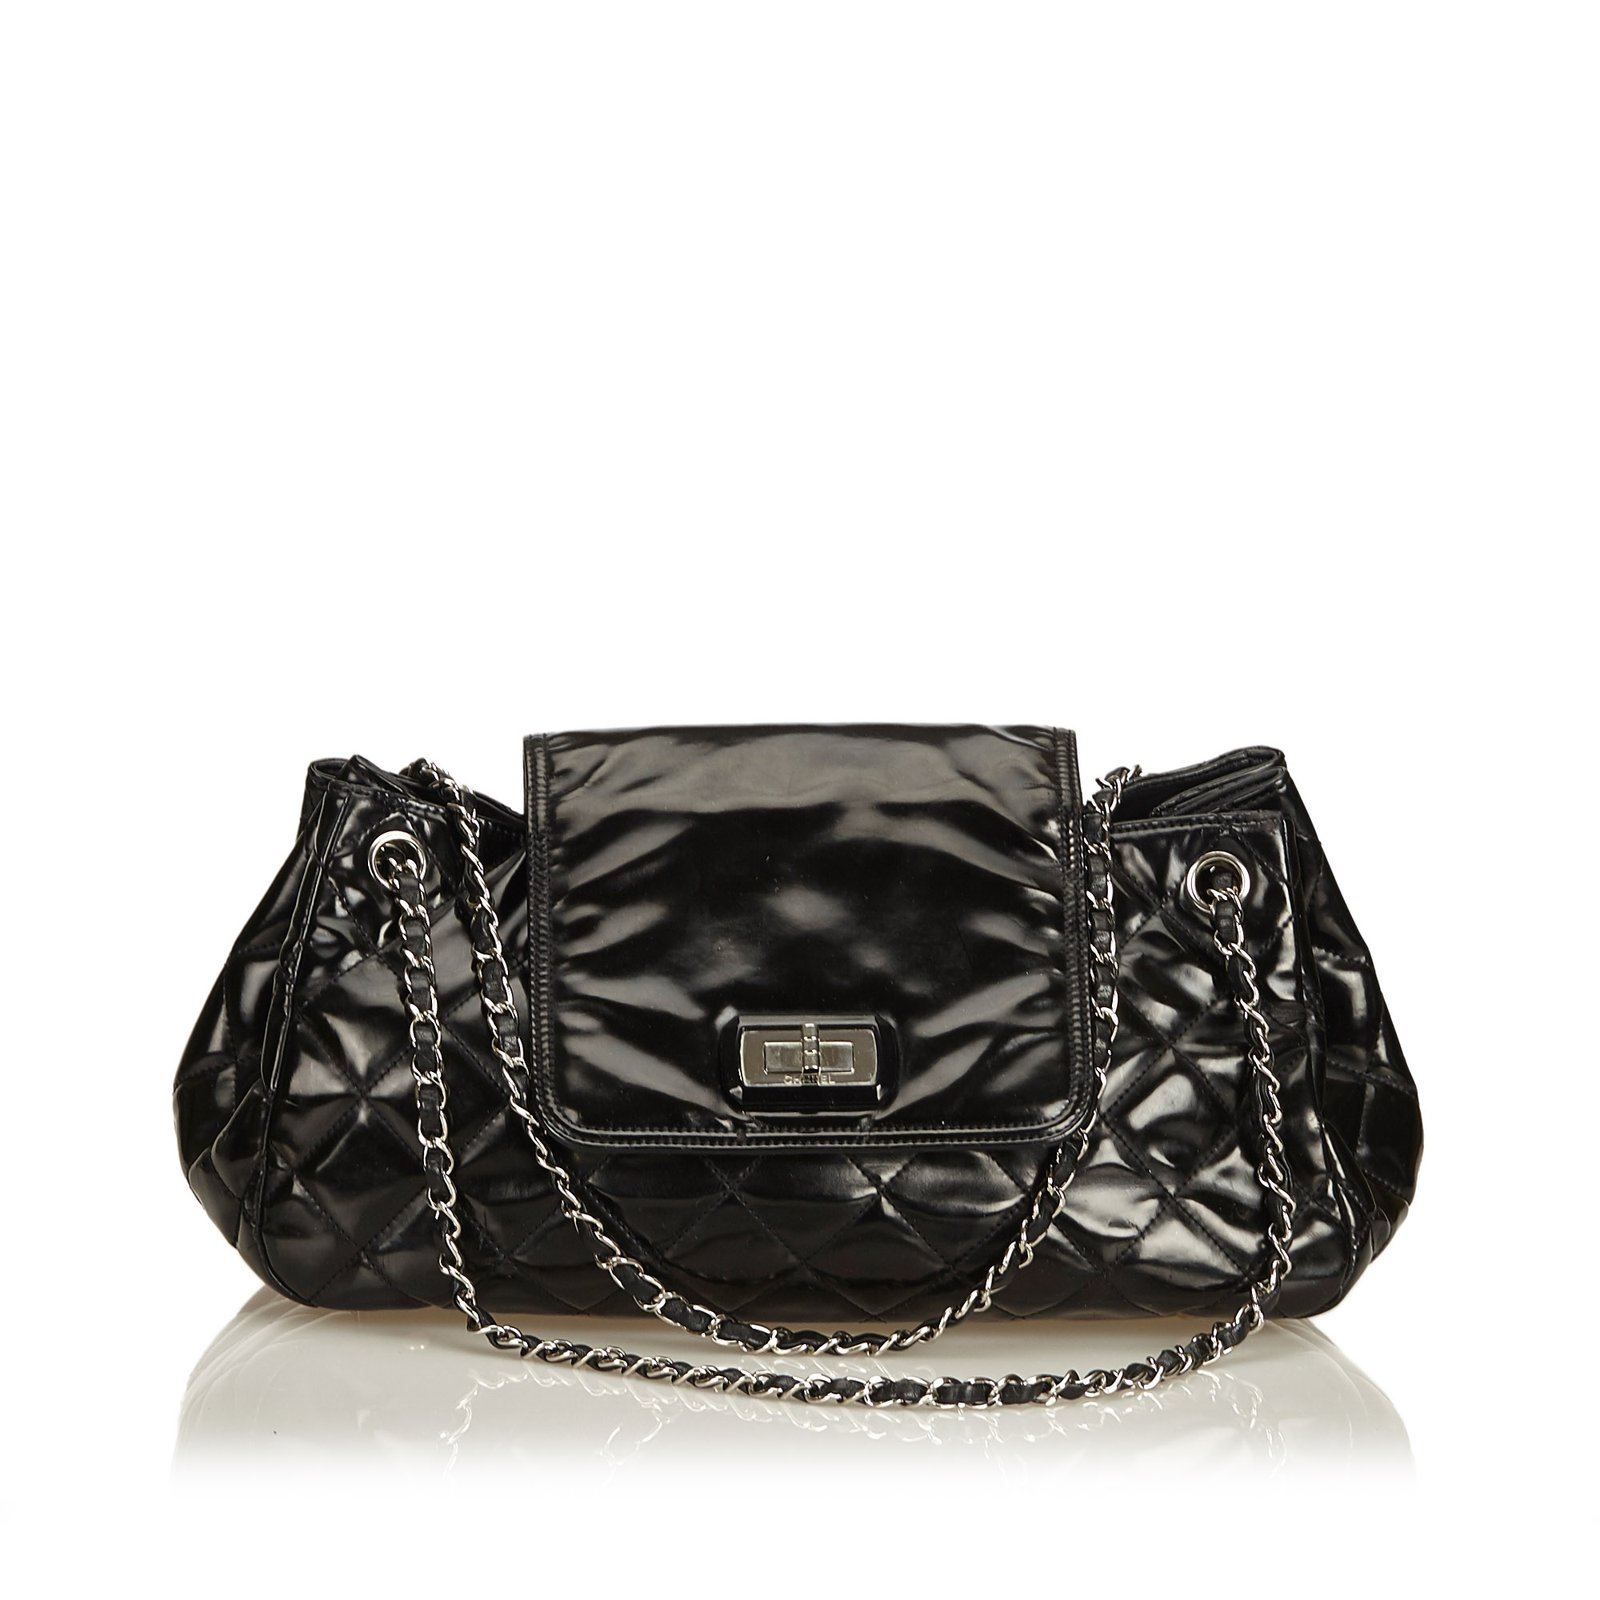 392615d49377 Chanel Patent Leather Reissue Accordion Flap Bag Handbags Leather,Patent  leather Black ref.90713